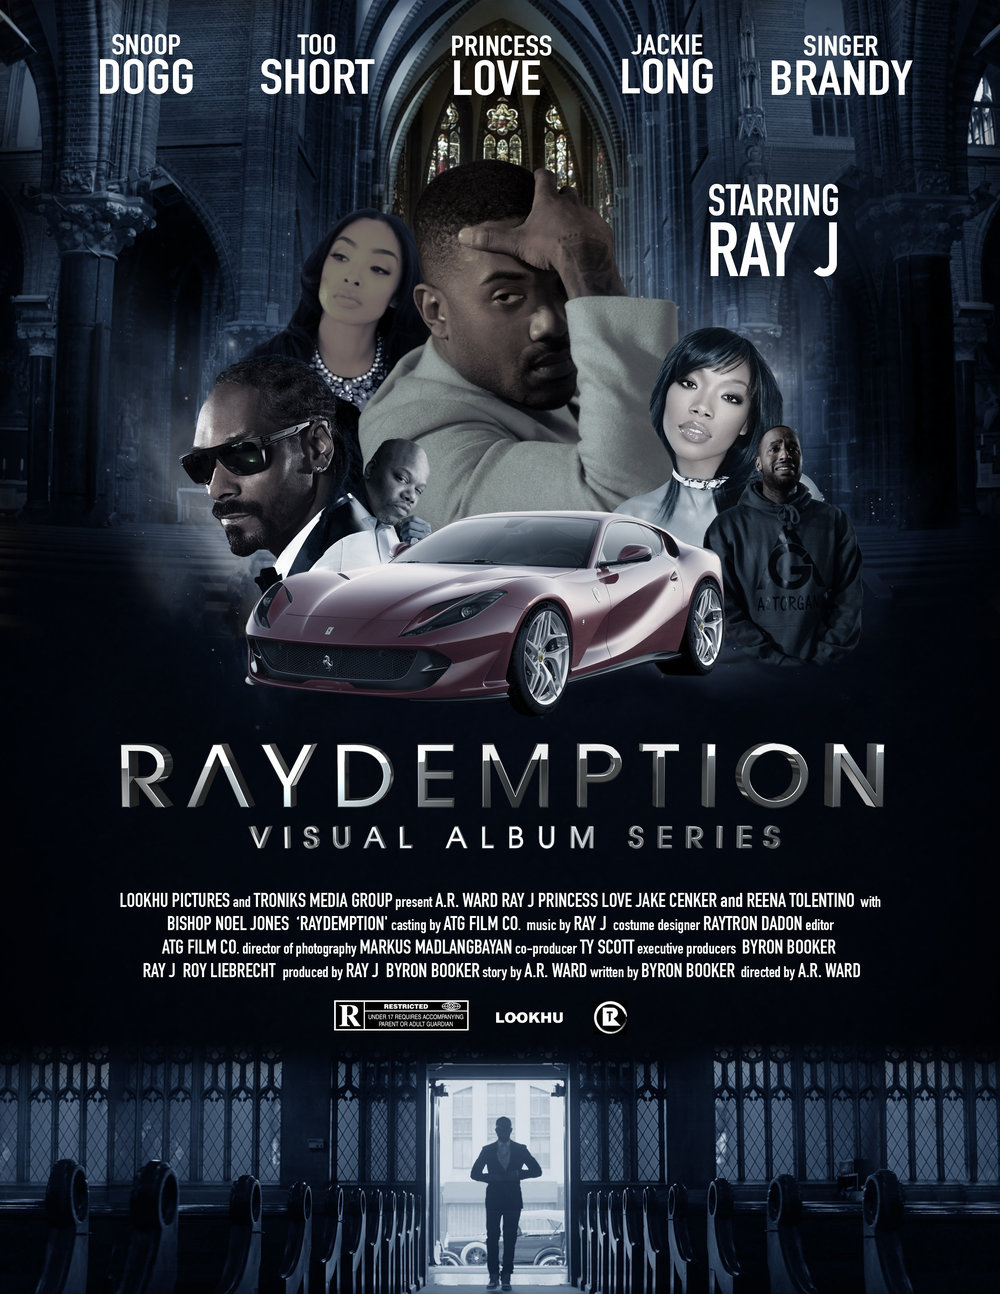 I designed a Movie poster for the Ray J visual album film of which I was the Director of Photography.